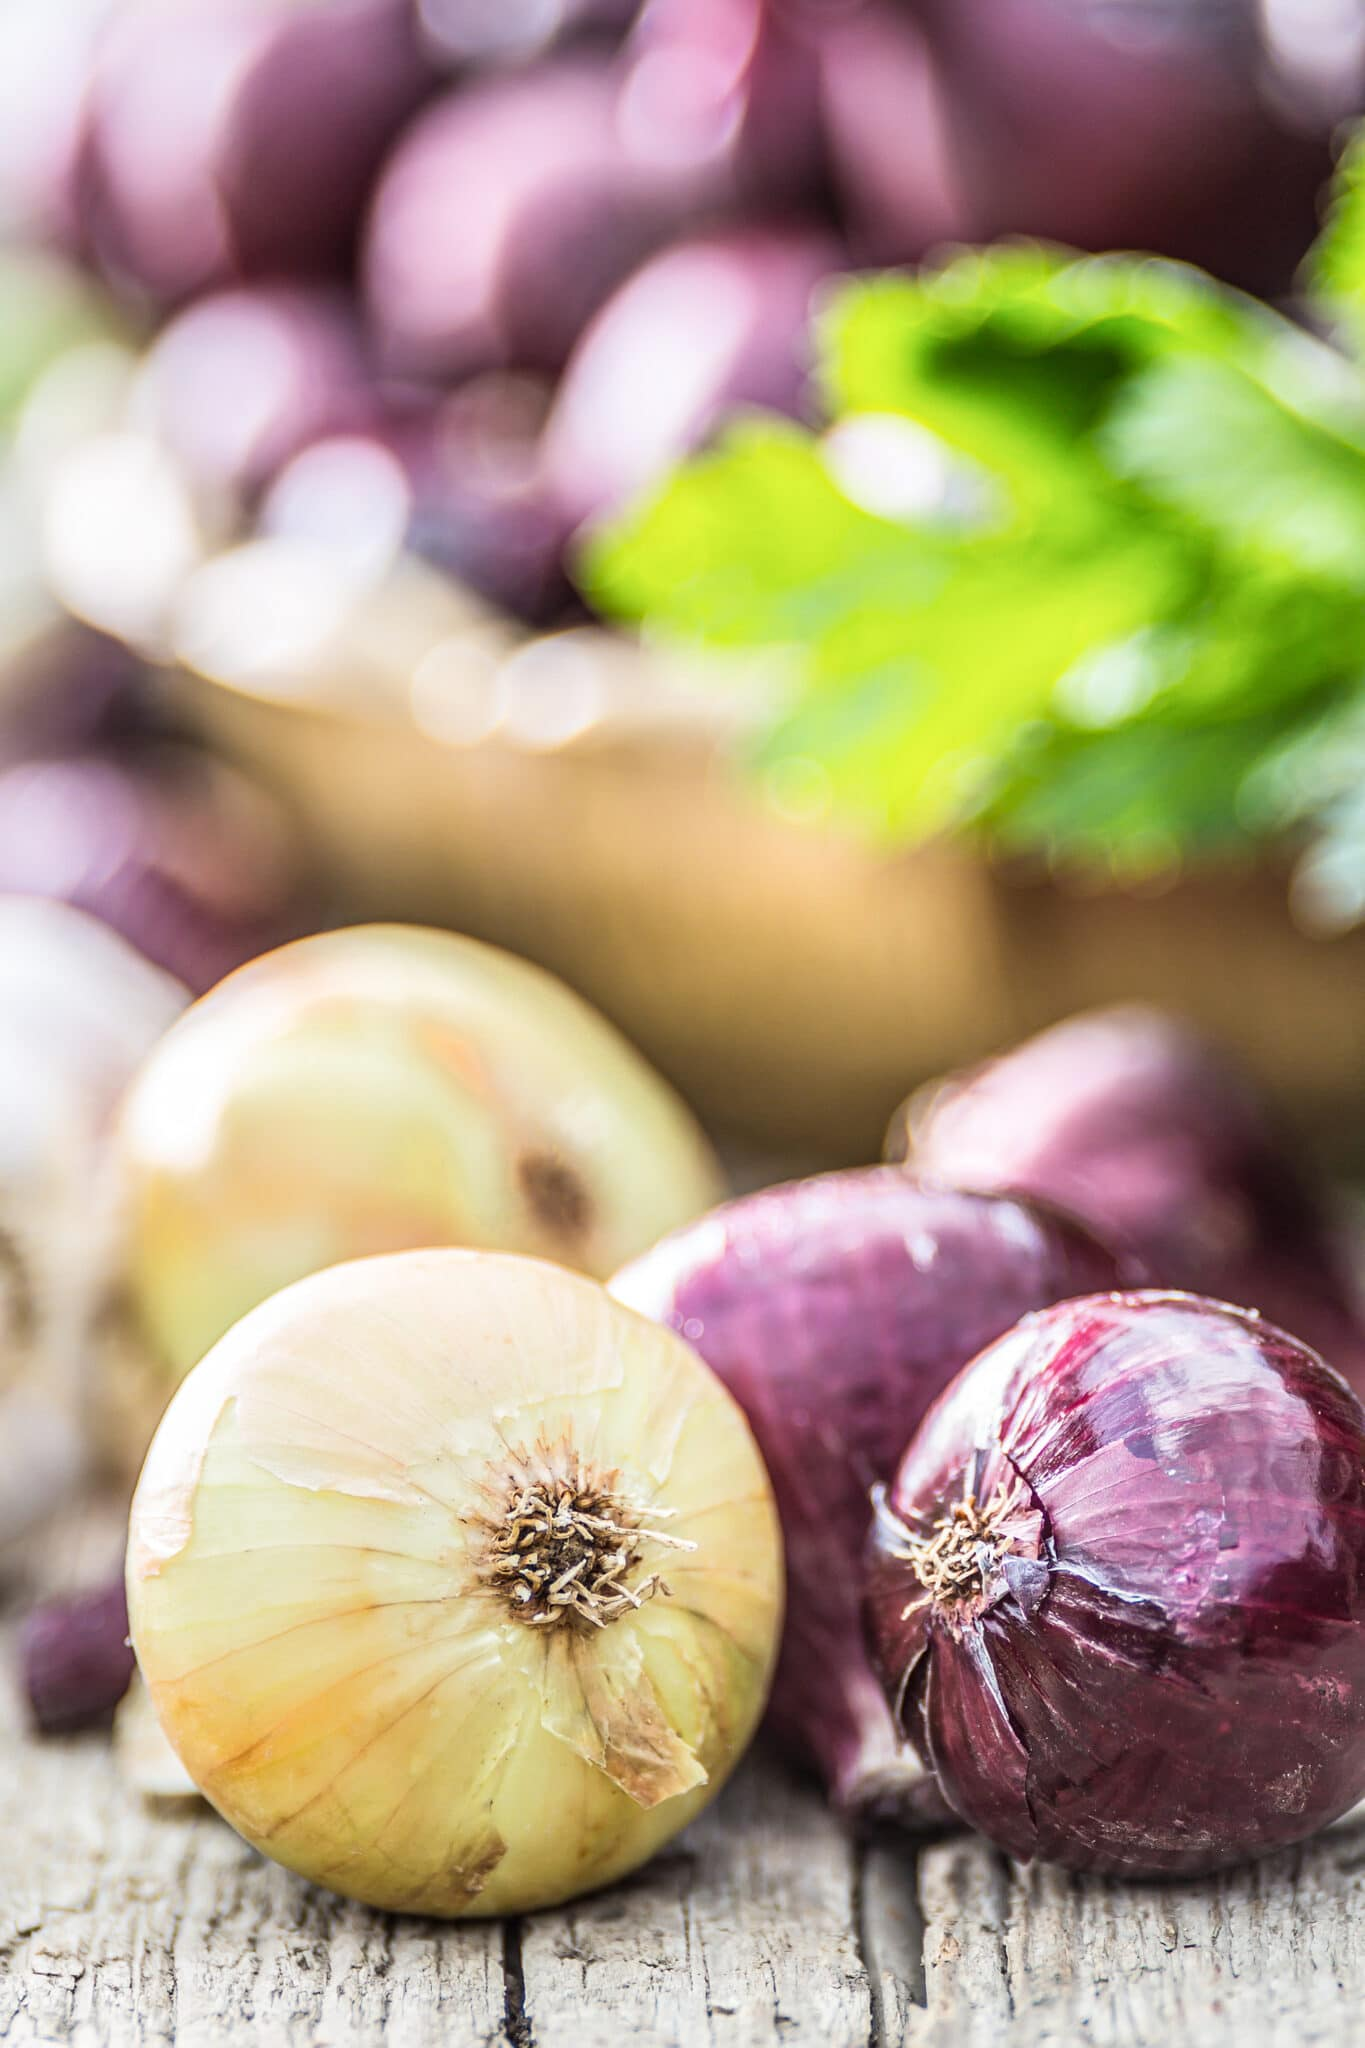 Different varieties of container grown onions on a rustic tabletop.